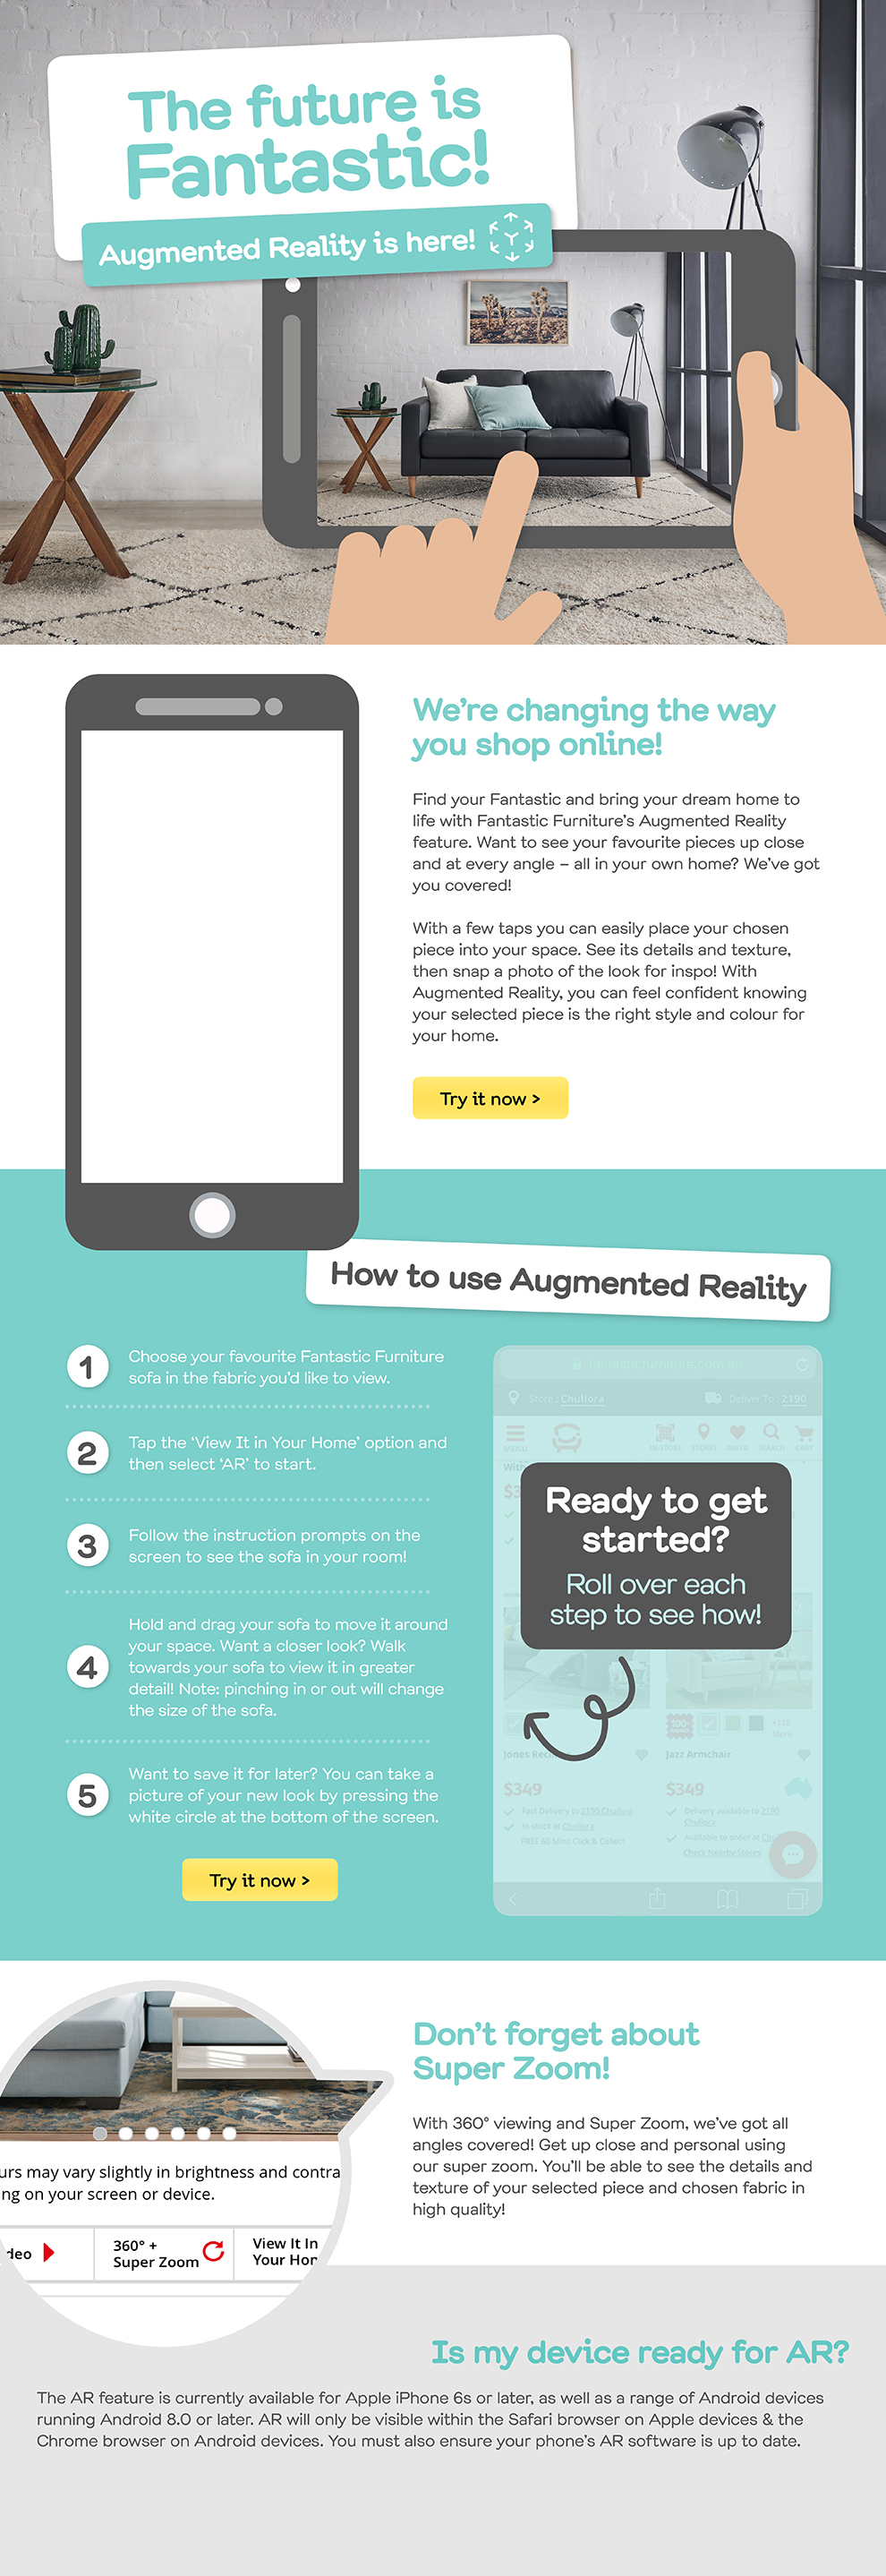 Augmented Reality is here!